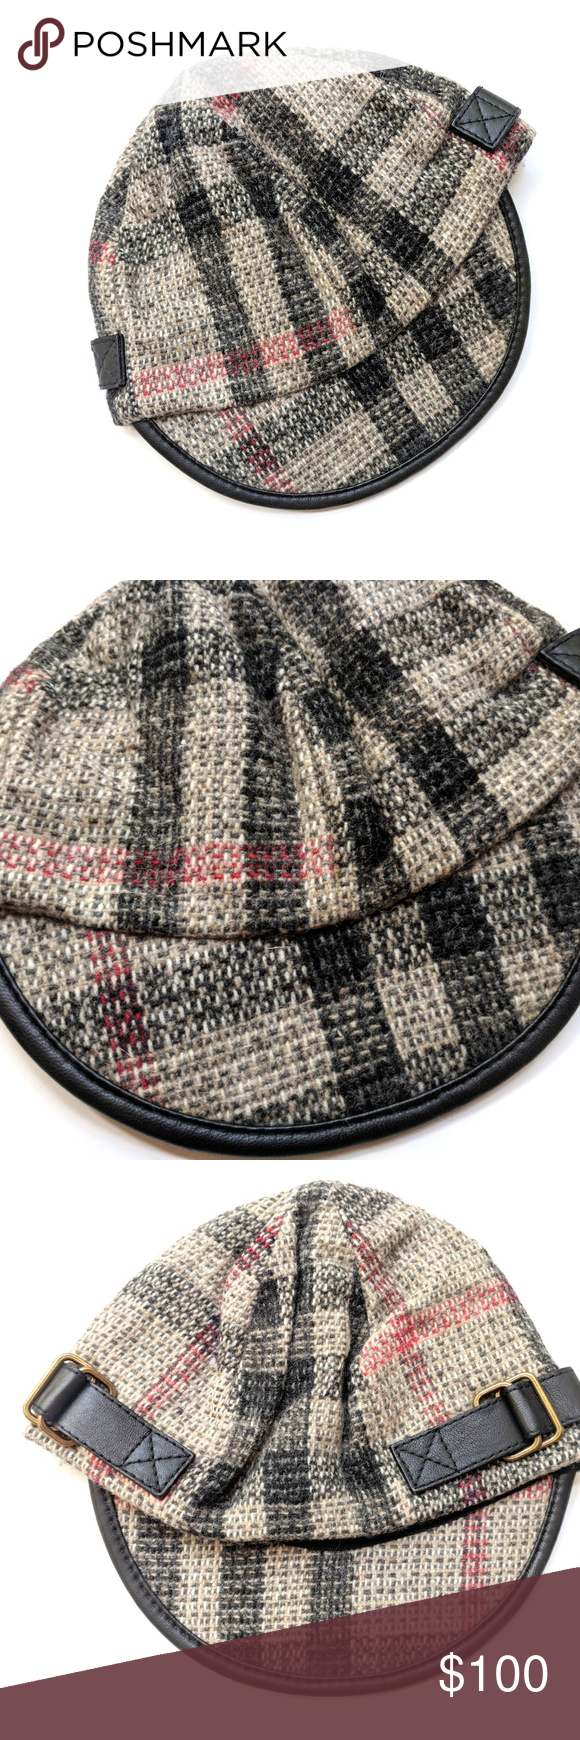 70e1fab91cb Burberry Women s Plaid Tartan Wool Cap Pageboy Hat Burberry Women s Plaid  Tartan Wool Cap Pageboy Hat Size  M 56-57cm Condition  VGUC My items come  from a ...